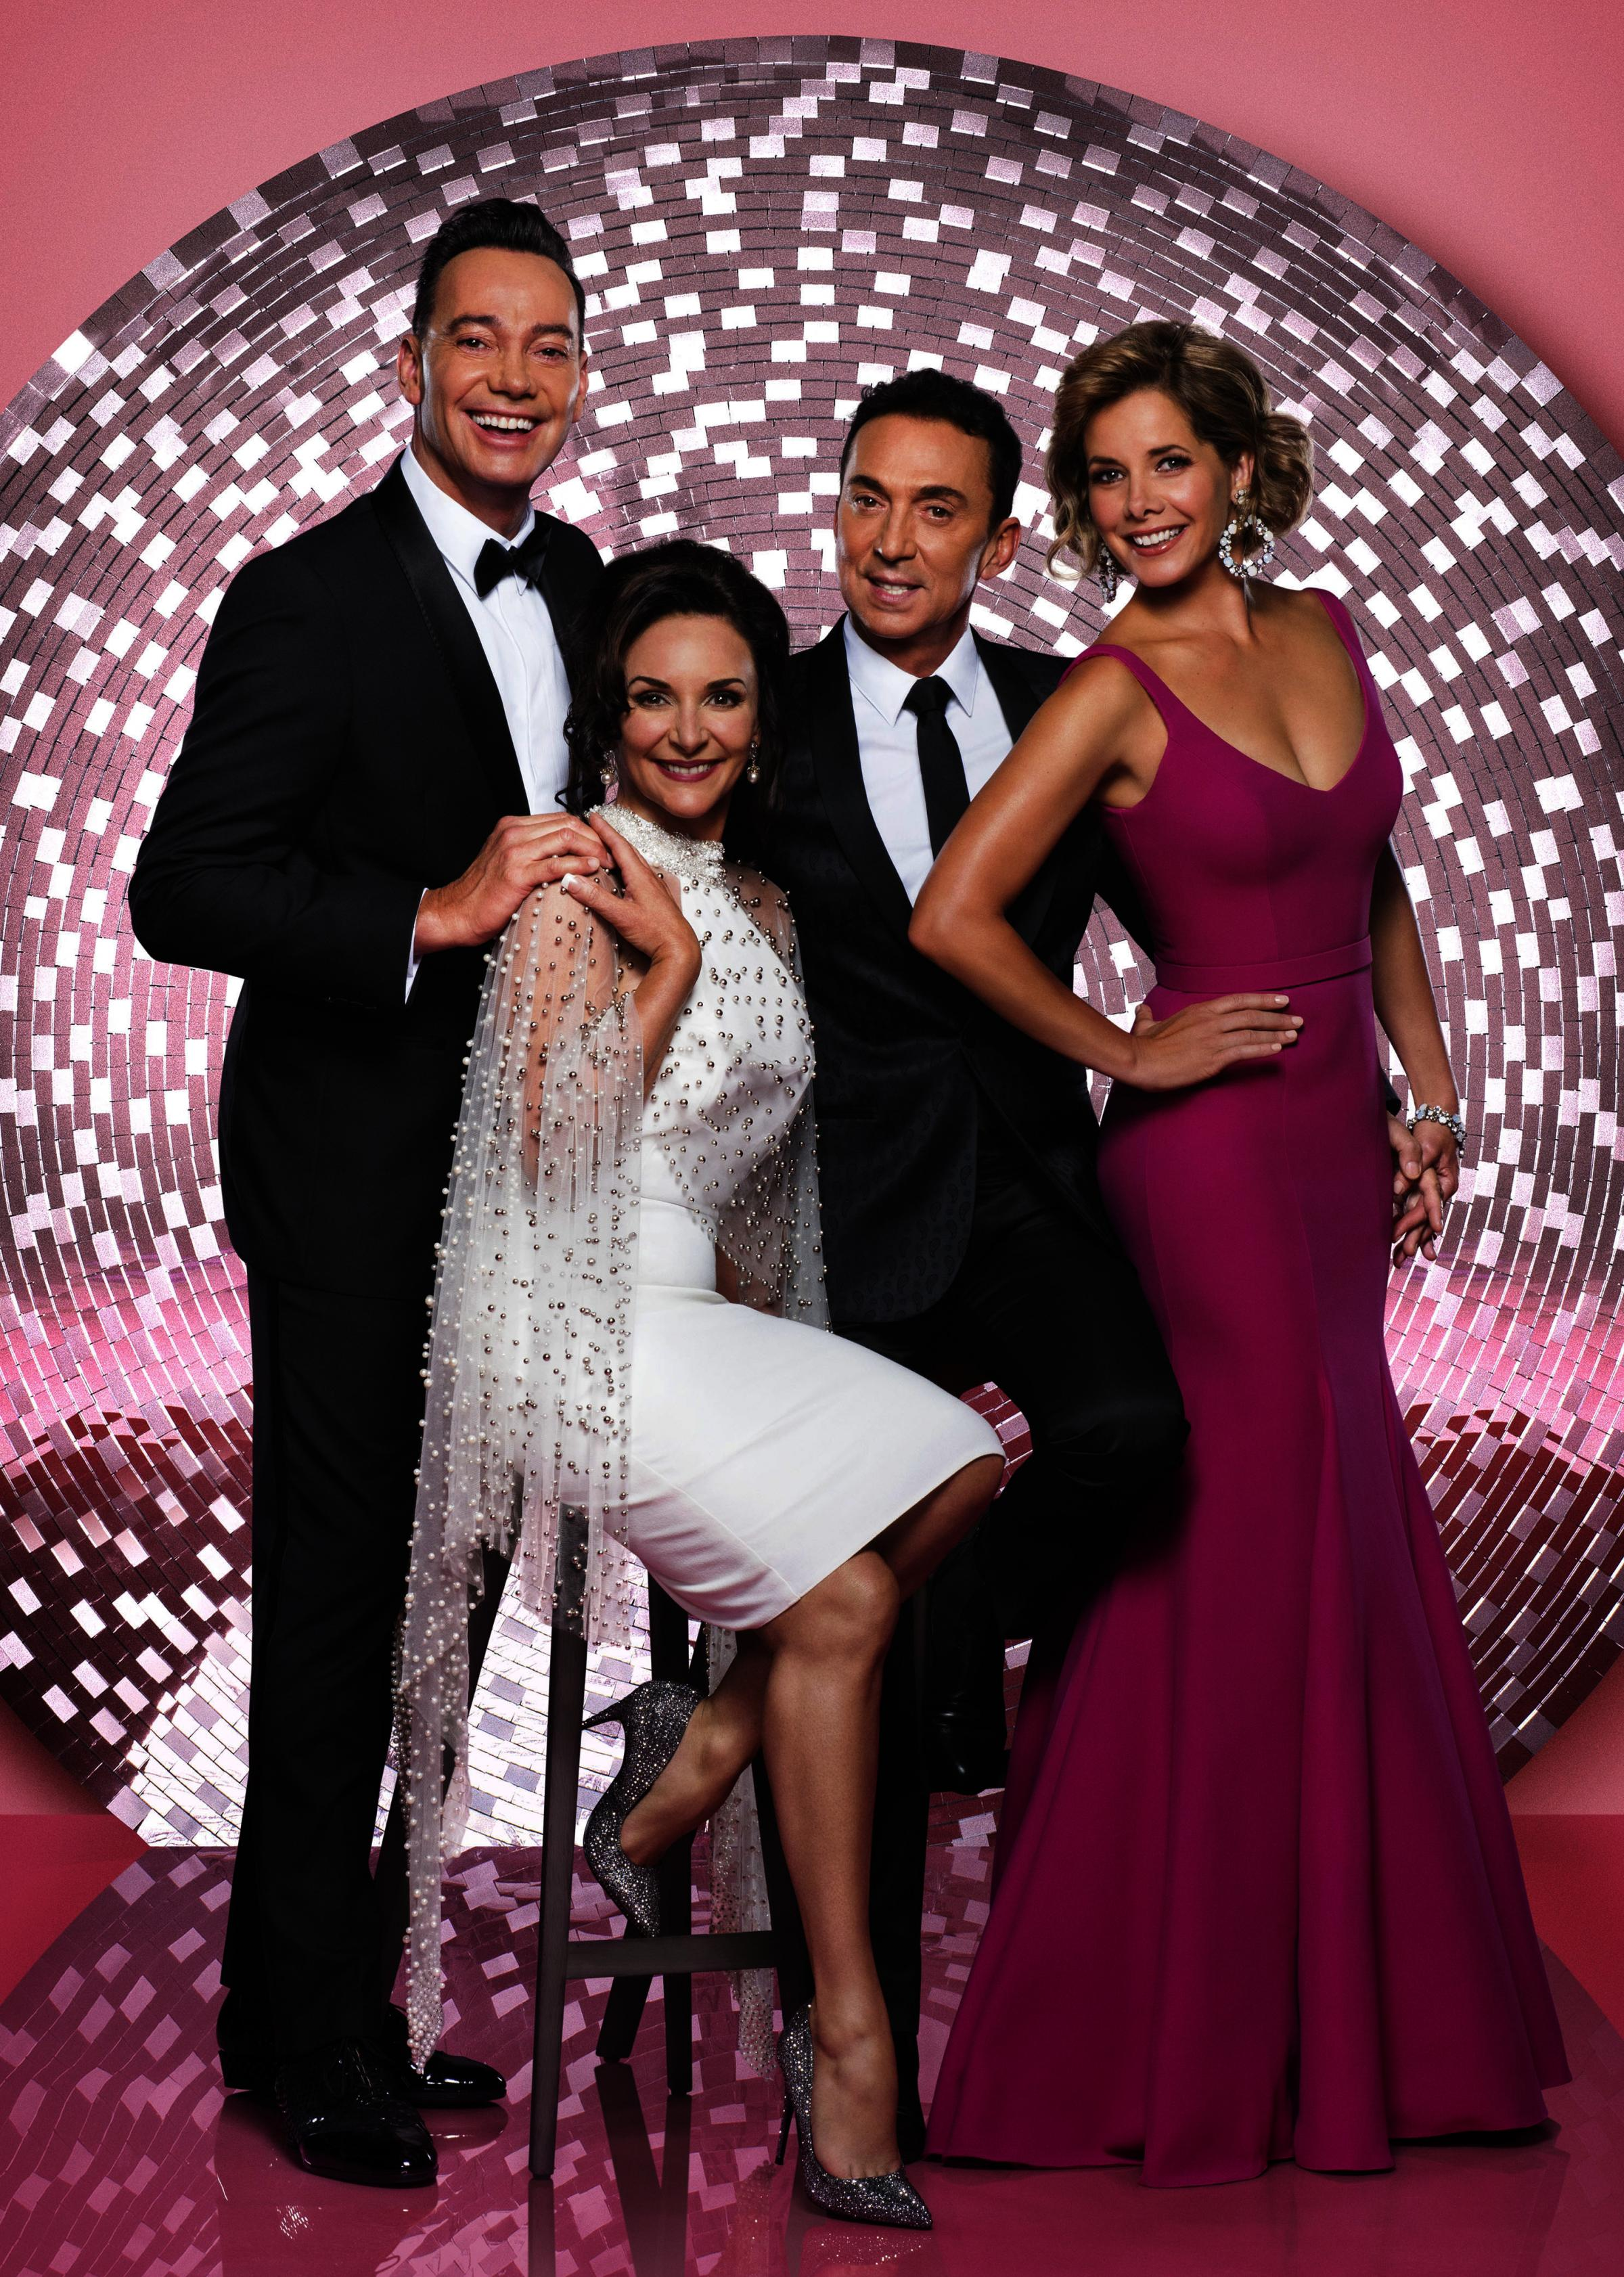 Strictly Come Dancing arena tour judges Craig Revel Horwood, Shirley Ballas, Bruno Tonioli, Dame Darcey Bussell. Picture by BBC/ Ray Burmiston